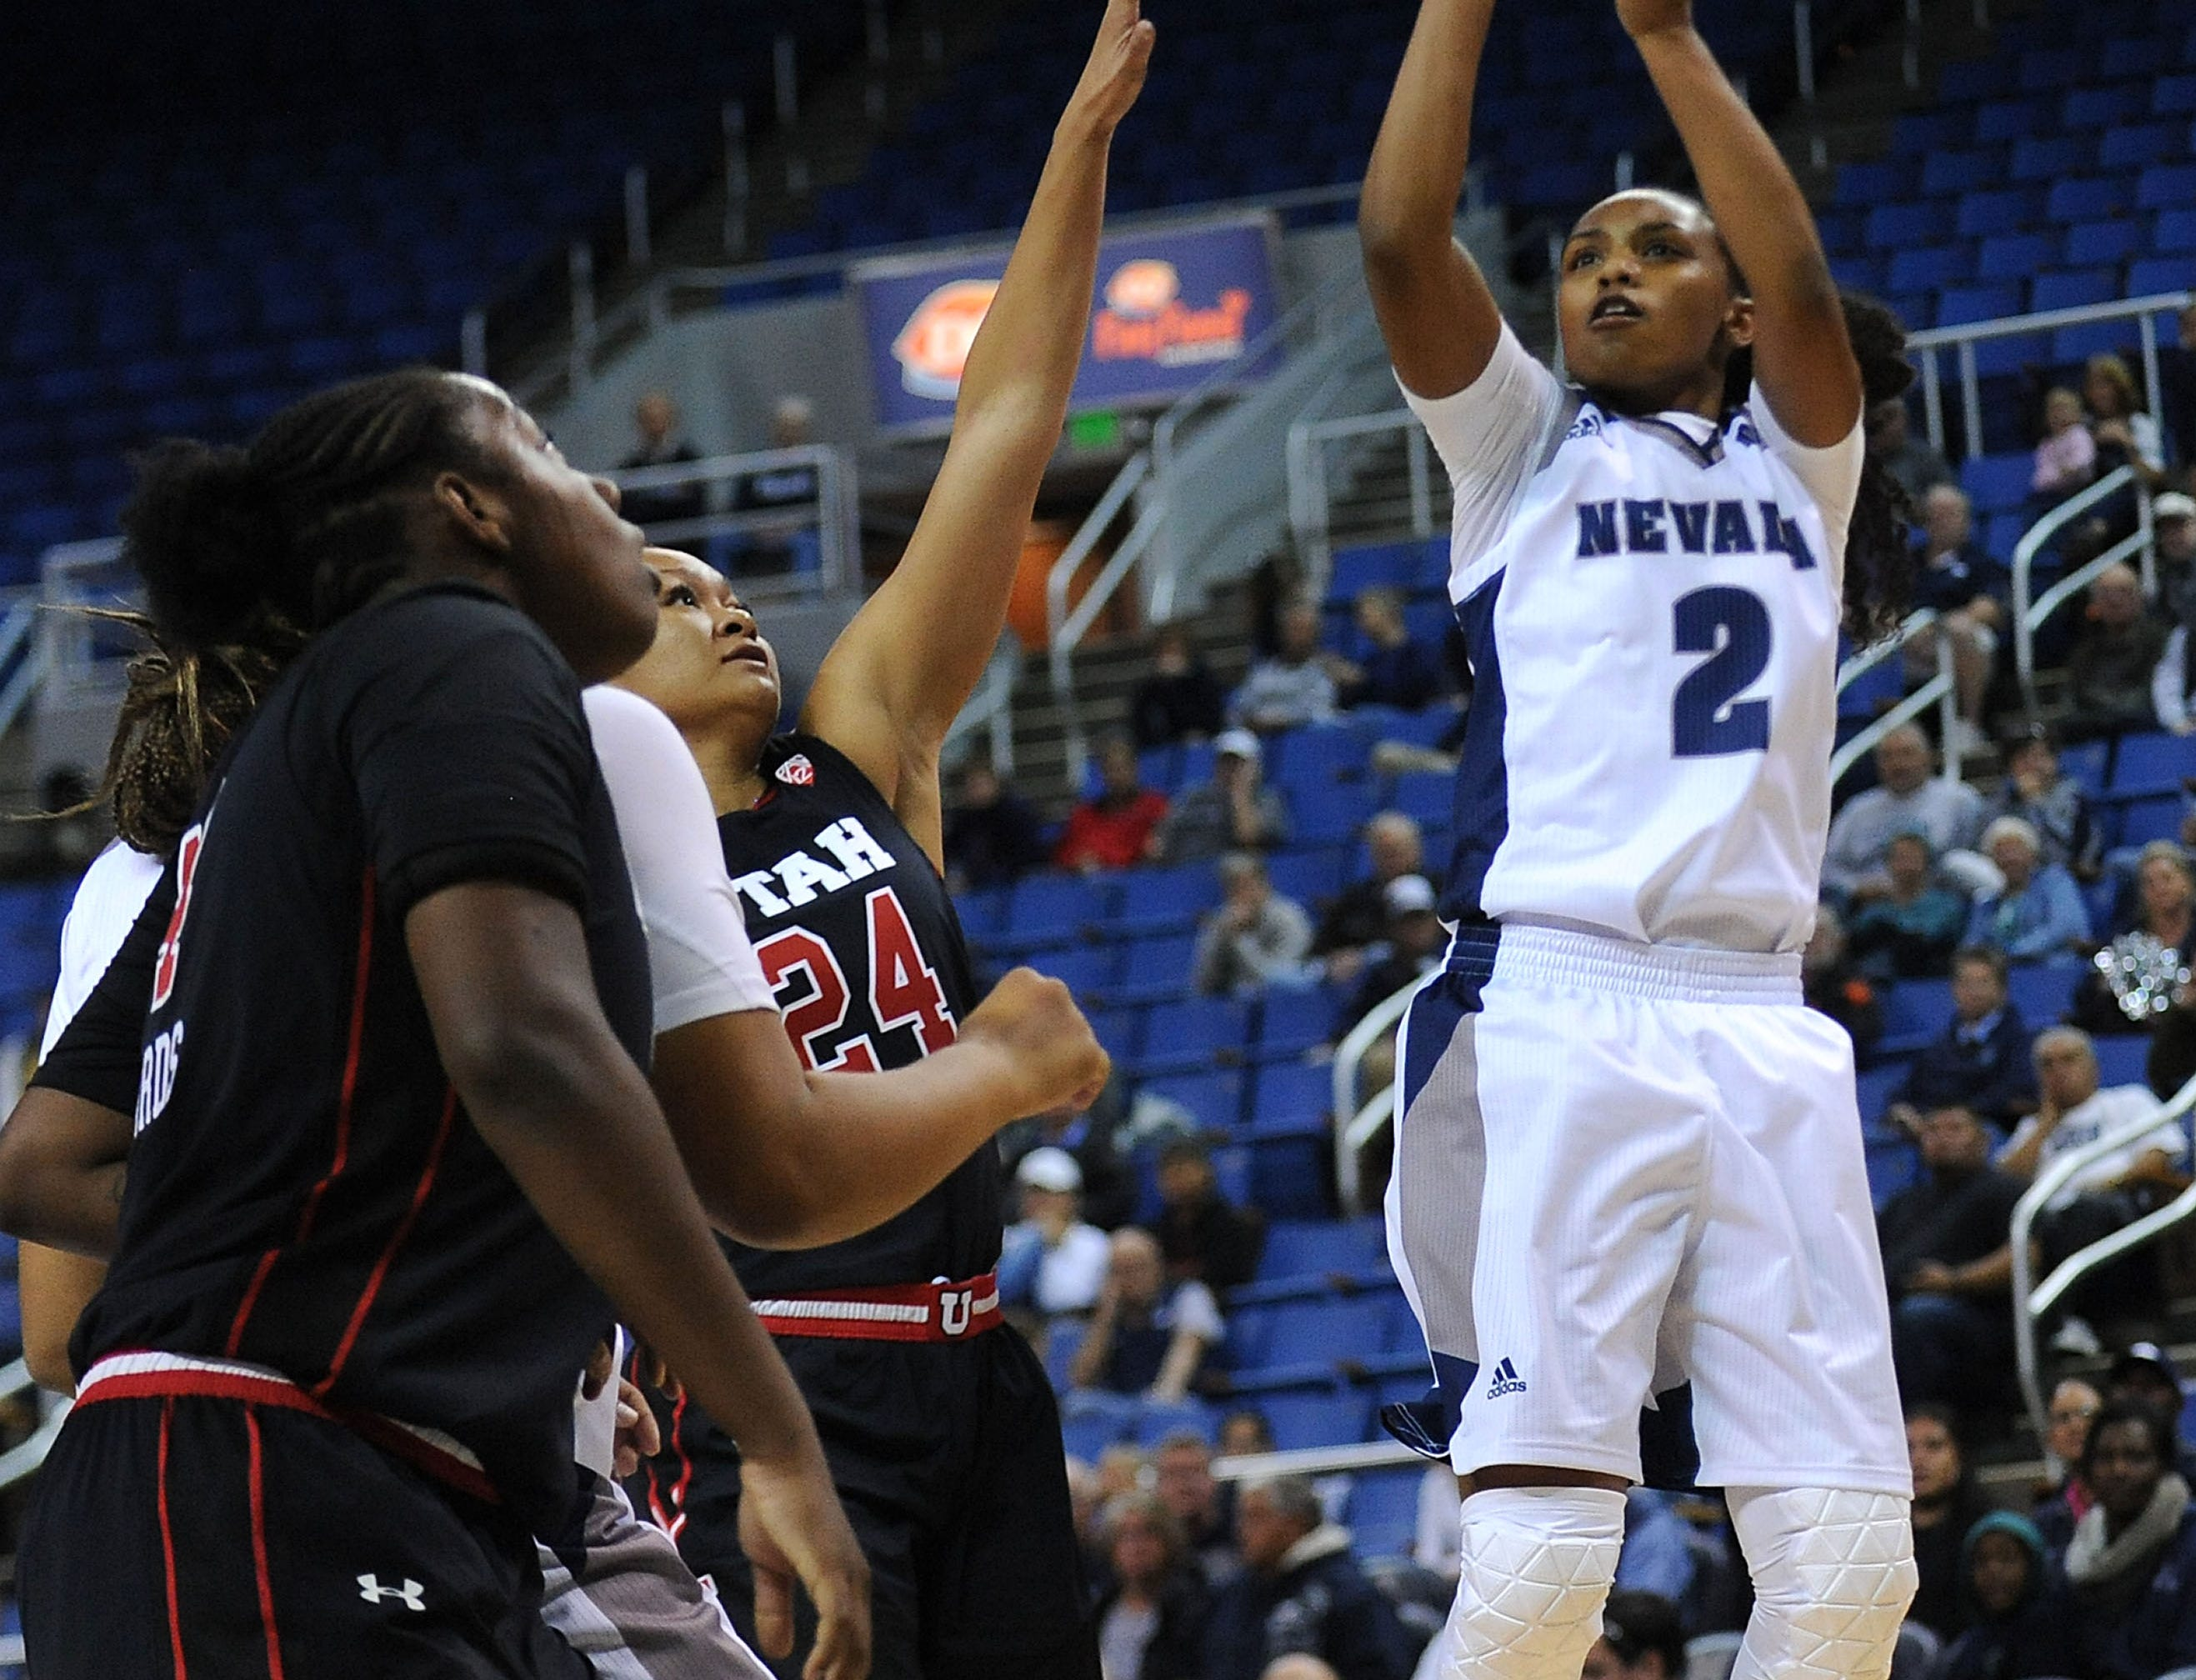 Nevada's Da'Ja Hamilton (2) shoots while taking on Utah during their basketball game at Lawlor Events Center in Reno on Nov. 7, 2018.